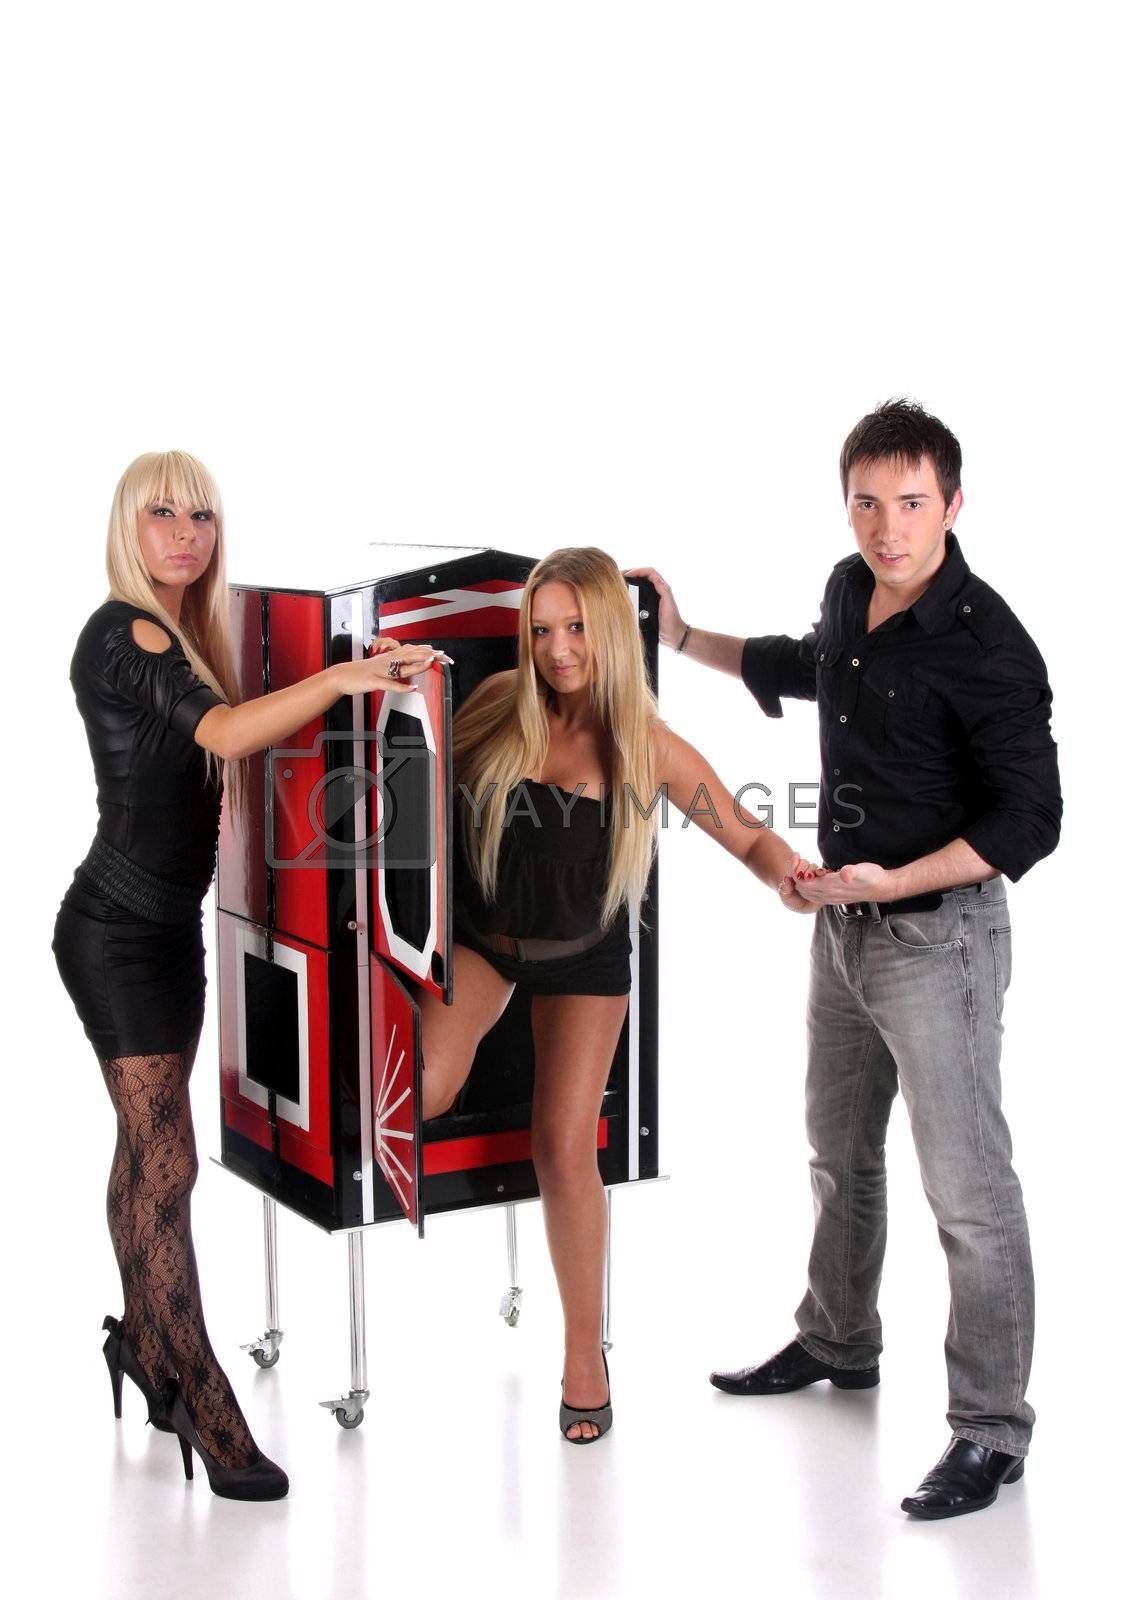 Magician performance with beauty girls in a magic box